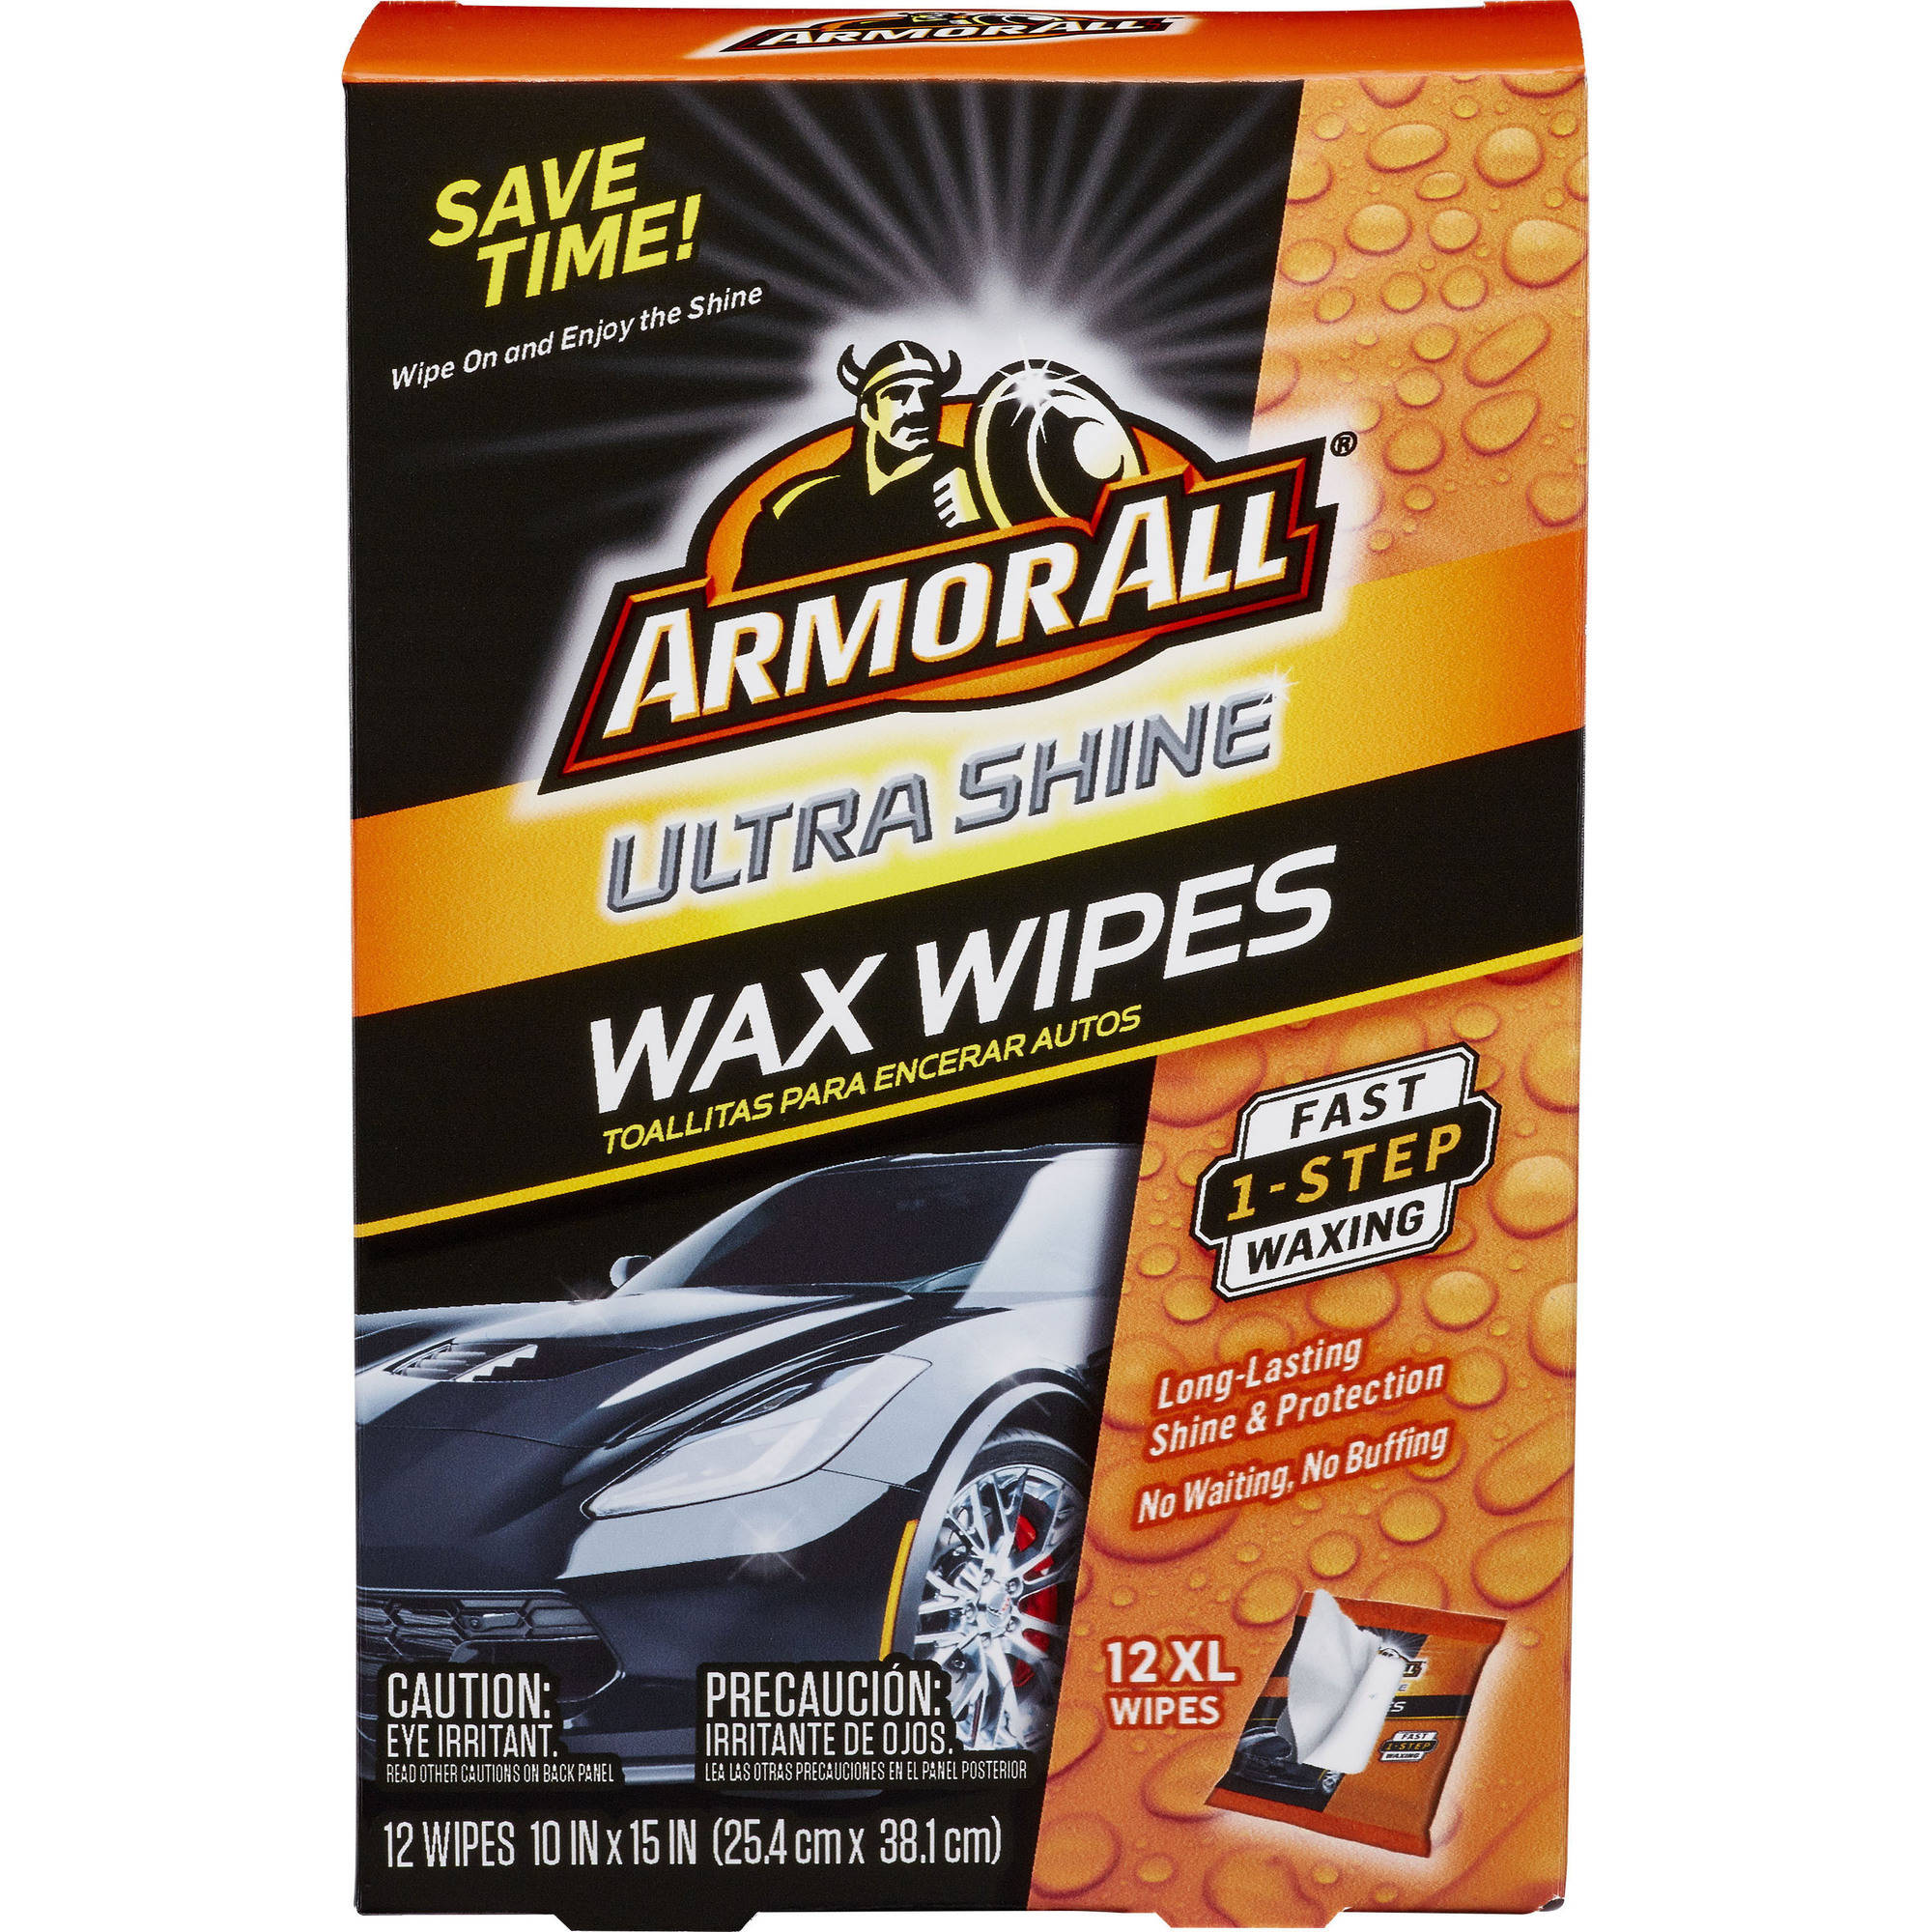 Armor All Ultra Shine Wax Wipes, 12-ct, Auto Wax